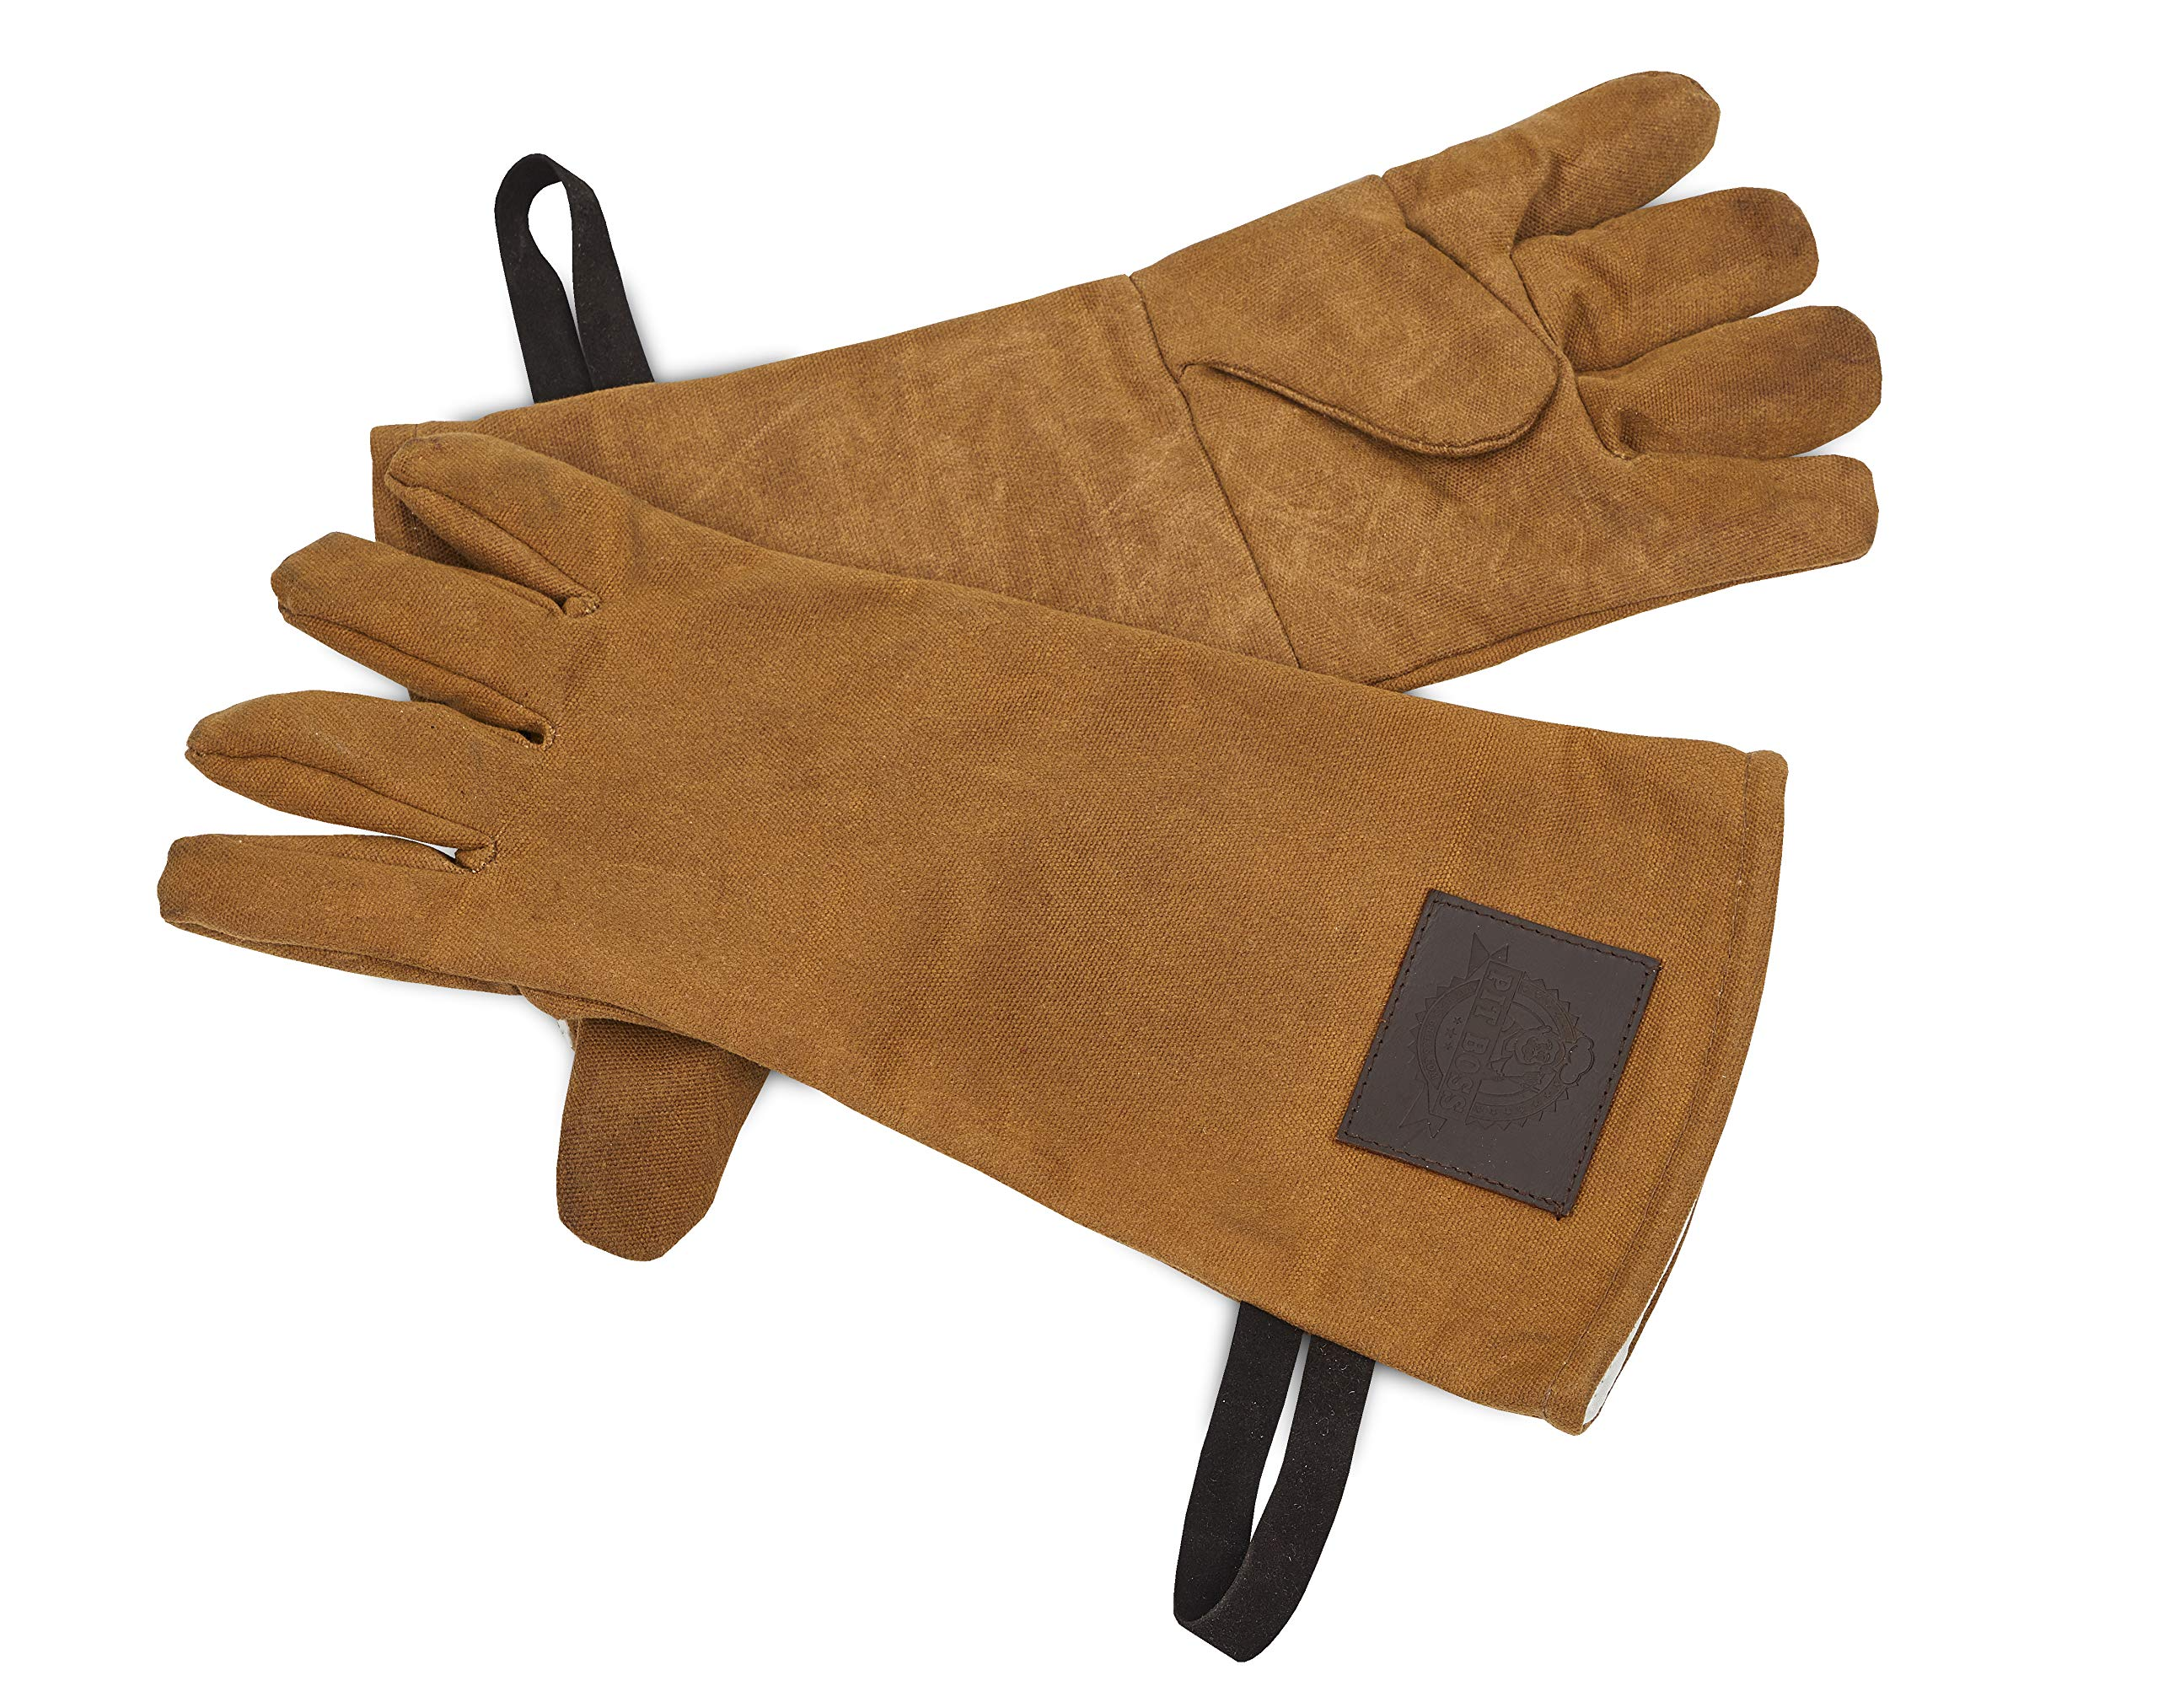 Pit Boss Grills 67284 Pit Boss Leather and Canvas BBQ Grilling Glove, Brown